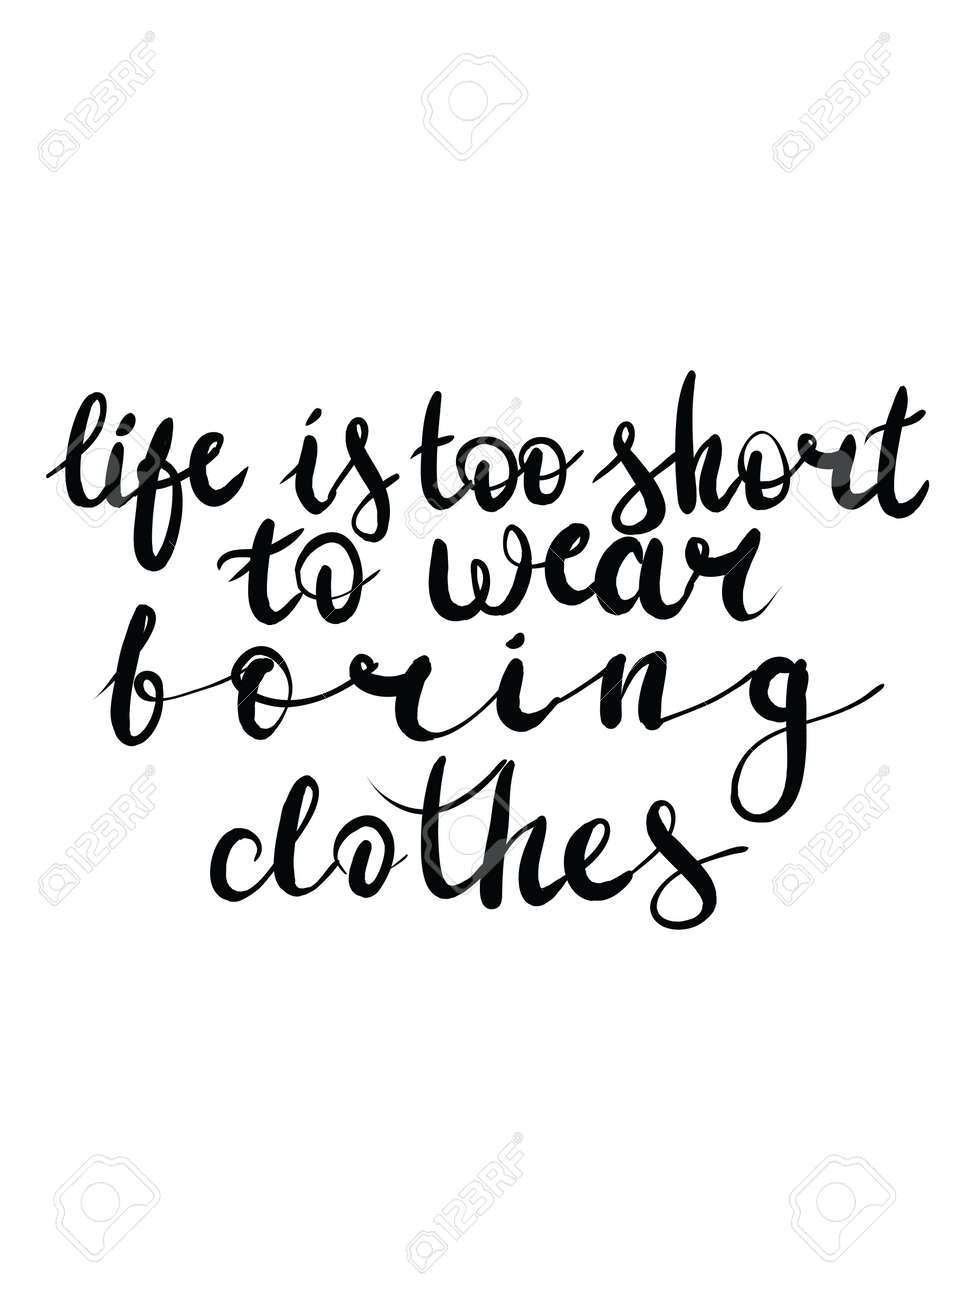 1f58589d0 Vector - Vector hand lettering calligraphy life is too short to wear boring  clothes